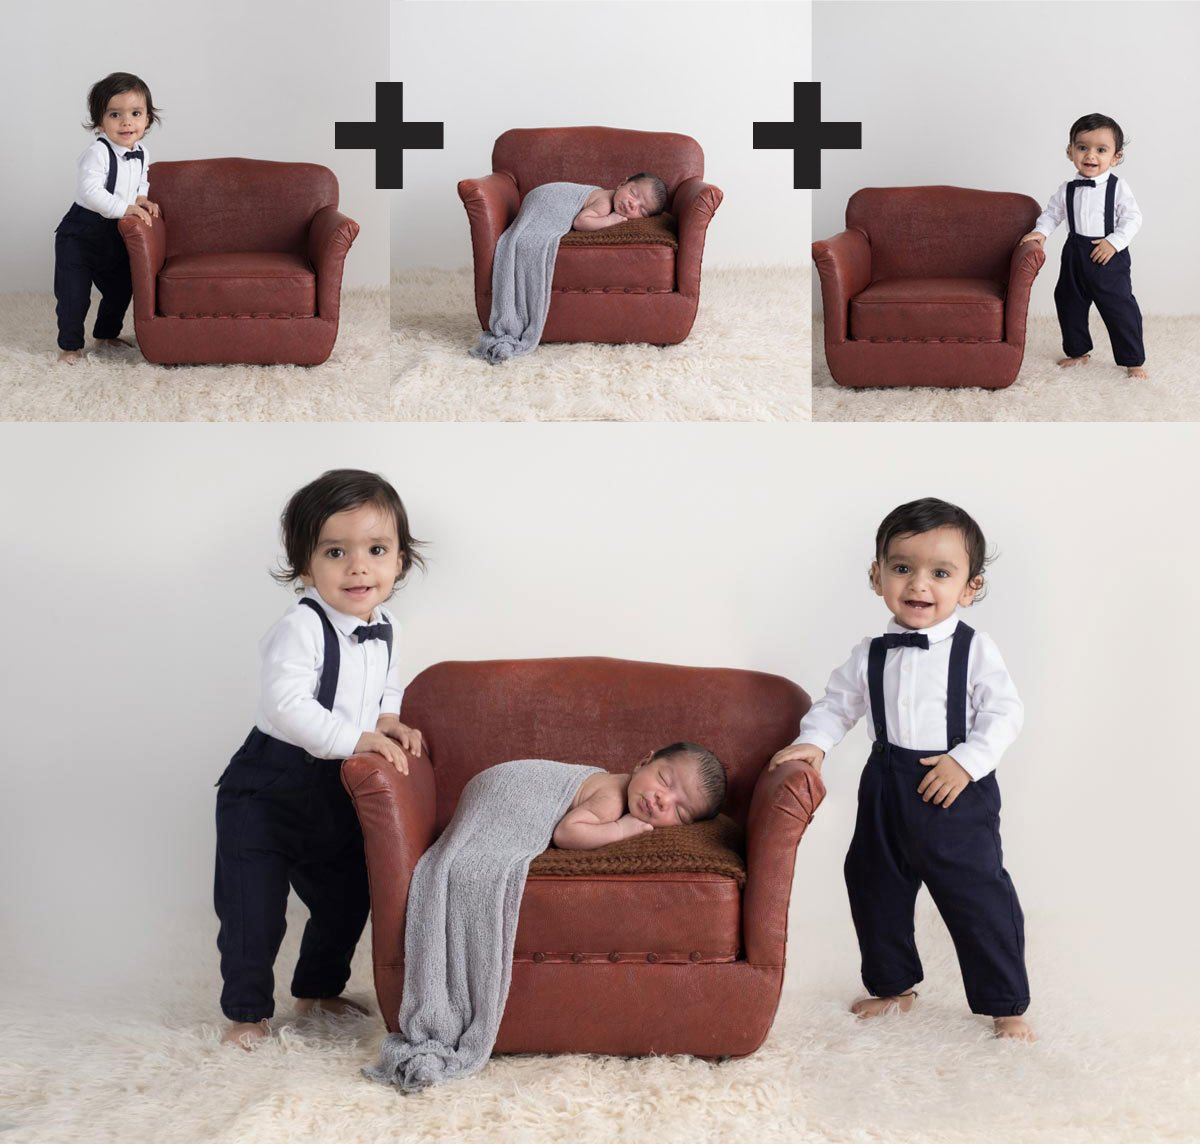 Sibling photos with newborn baby How-To Guide 10